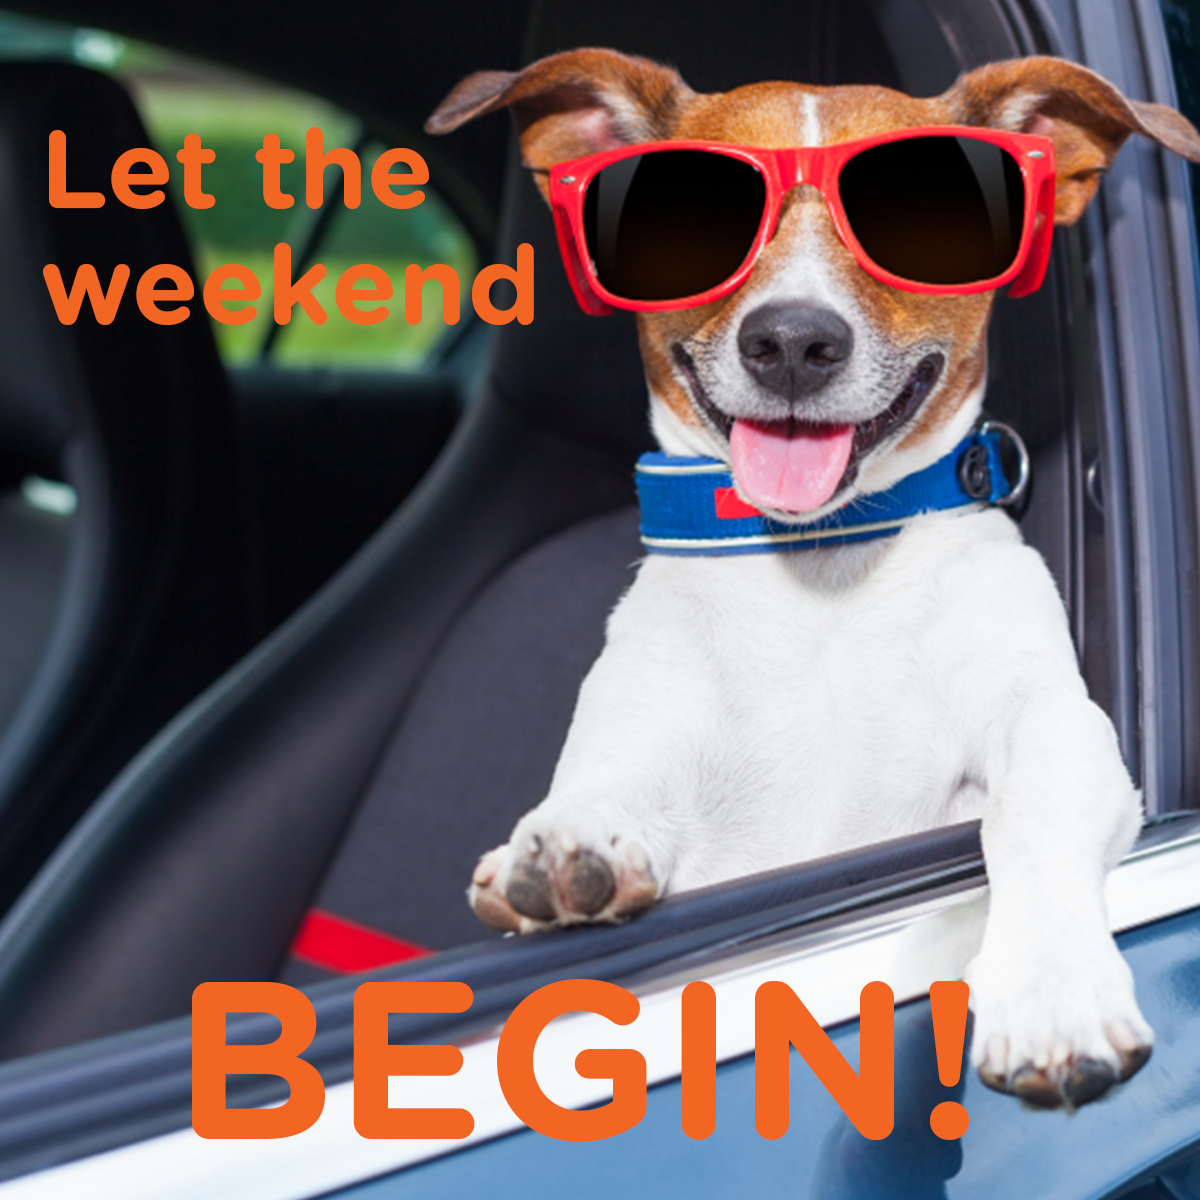 Let the weekend begin happy memorial day weekend everyone saturday morning quotes